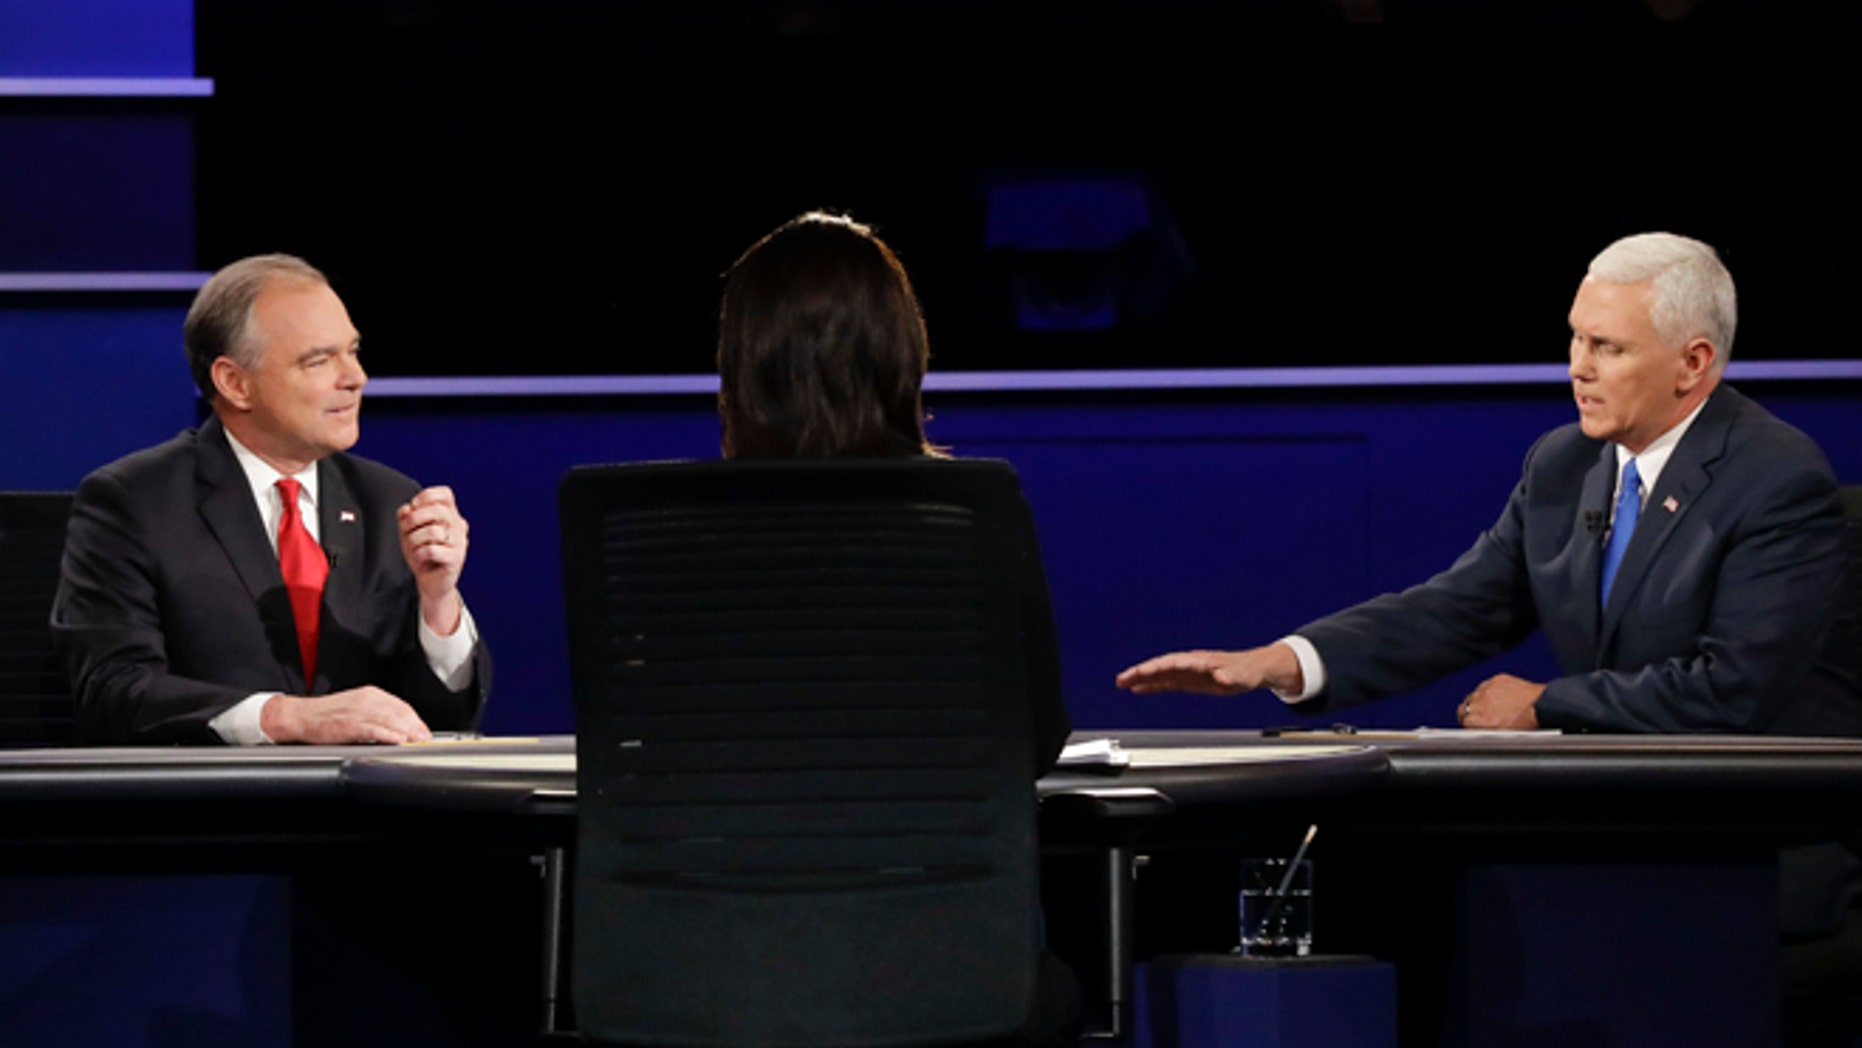 Republican vice-presidential nominee Gov. Mike Pence, right, and Democratic vice-presidential nominee Sen. Tim Kaine answer a question during the vice-presidential debate at Longwood University in Farmville, Va., Tuesday, Oct. 4, 2016. (AP Photo/David Goldman)